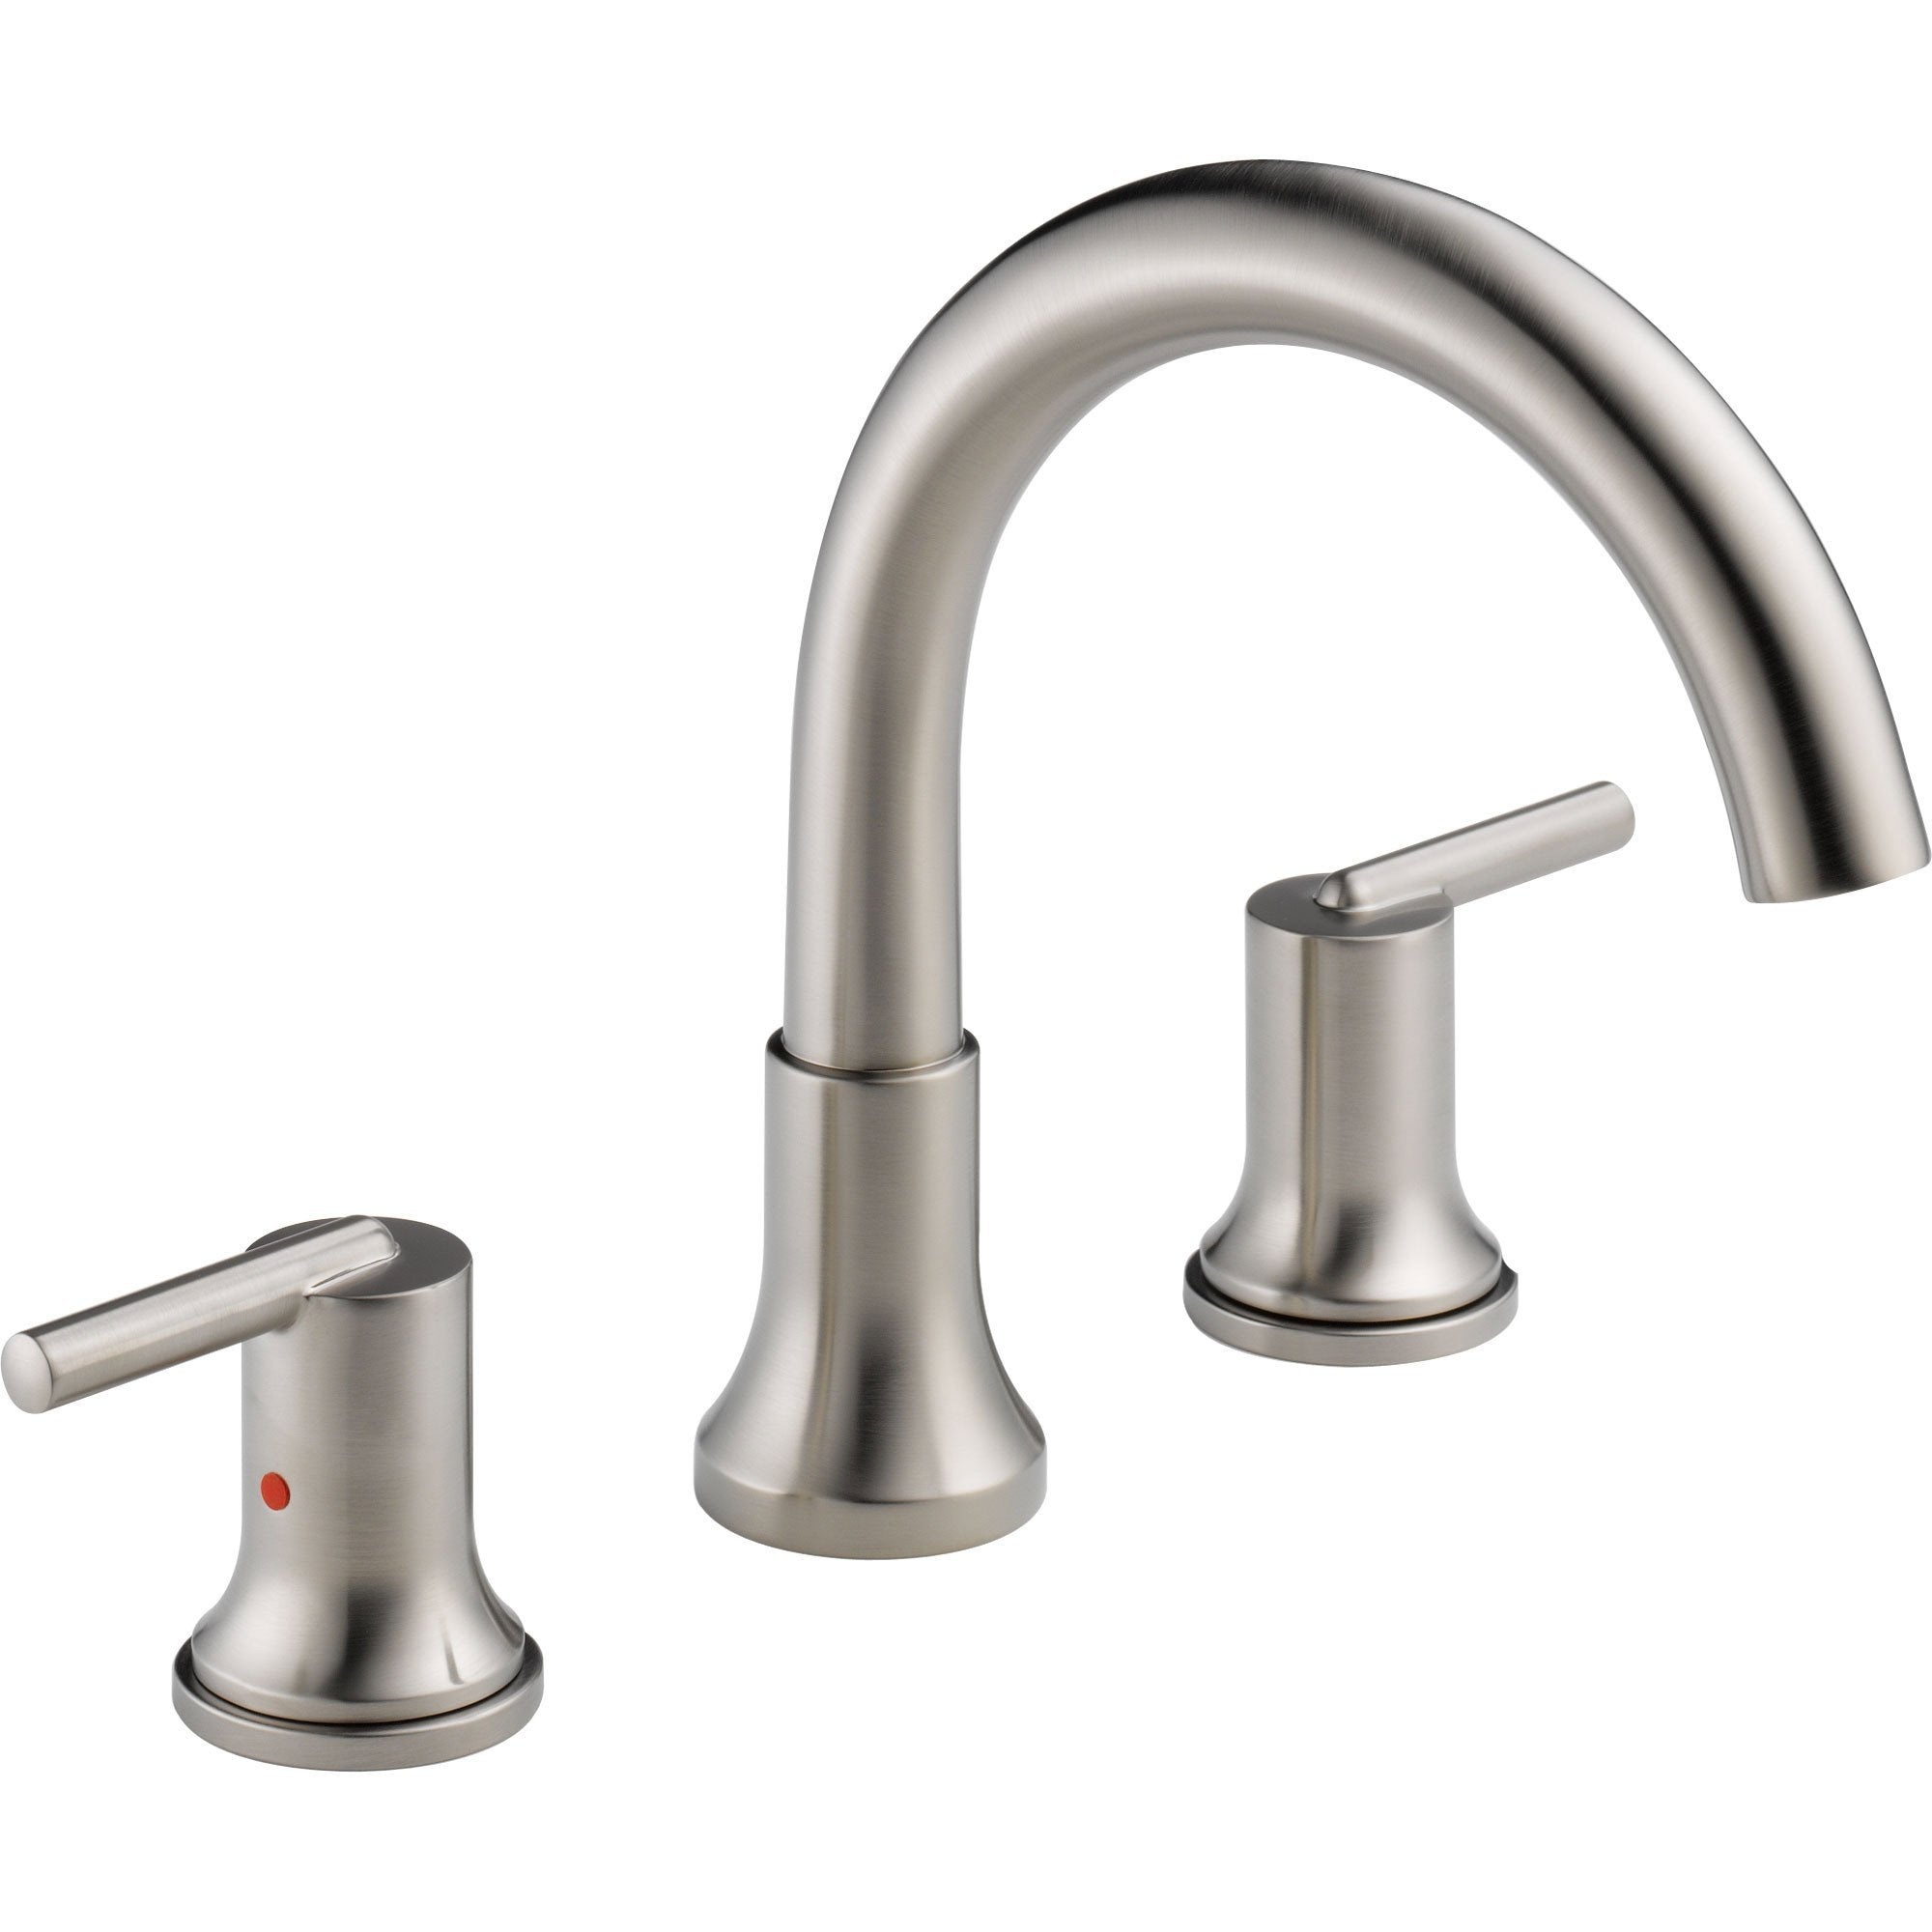 Delta Trinsic Modern Stainless Steel Finish Roman Tub Faucet Trim Kit 590150